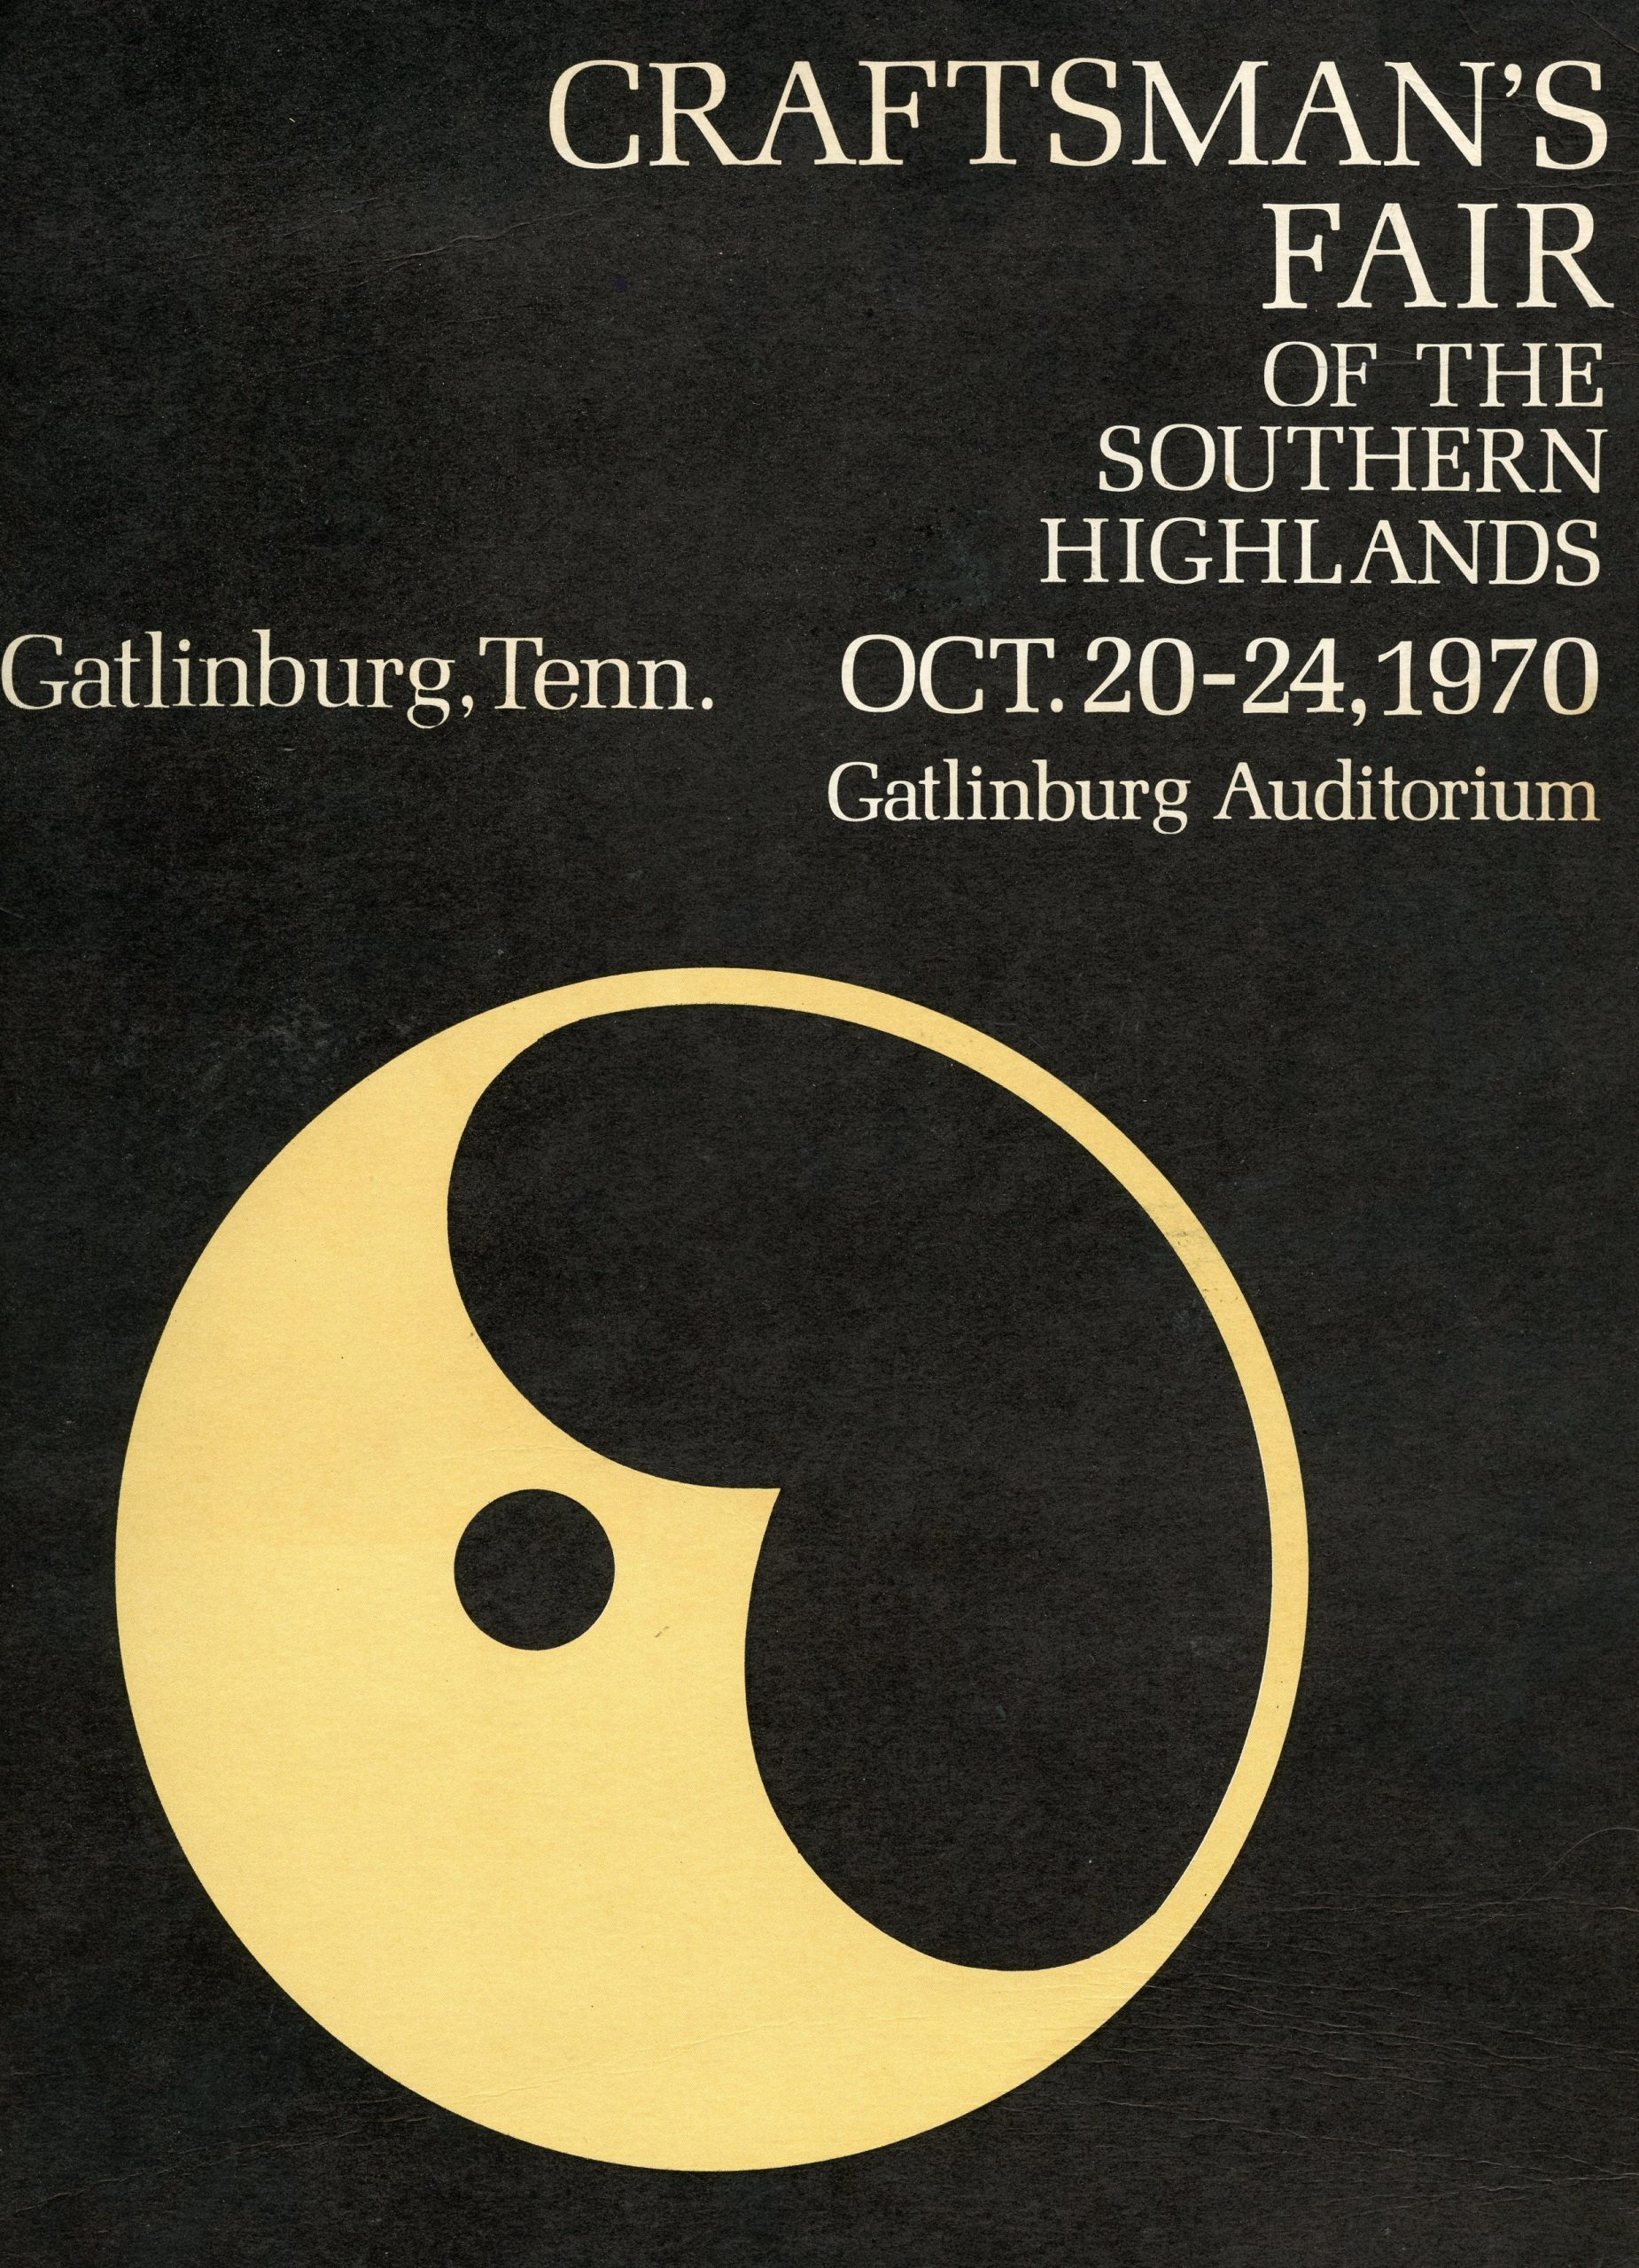 Hugh designed this fair poster for the Guild in 1970. He also designed ads and brochures, always donating his time to the organization.